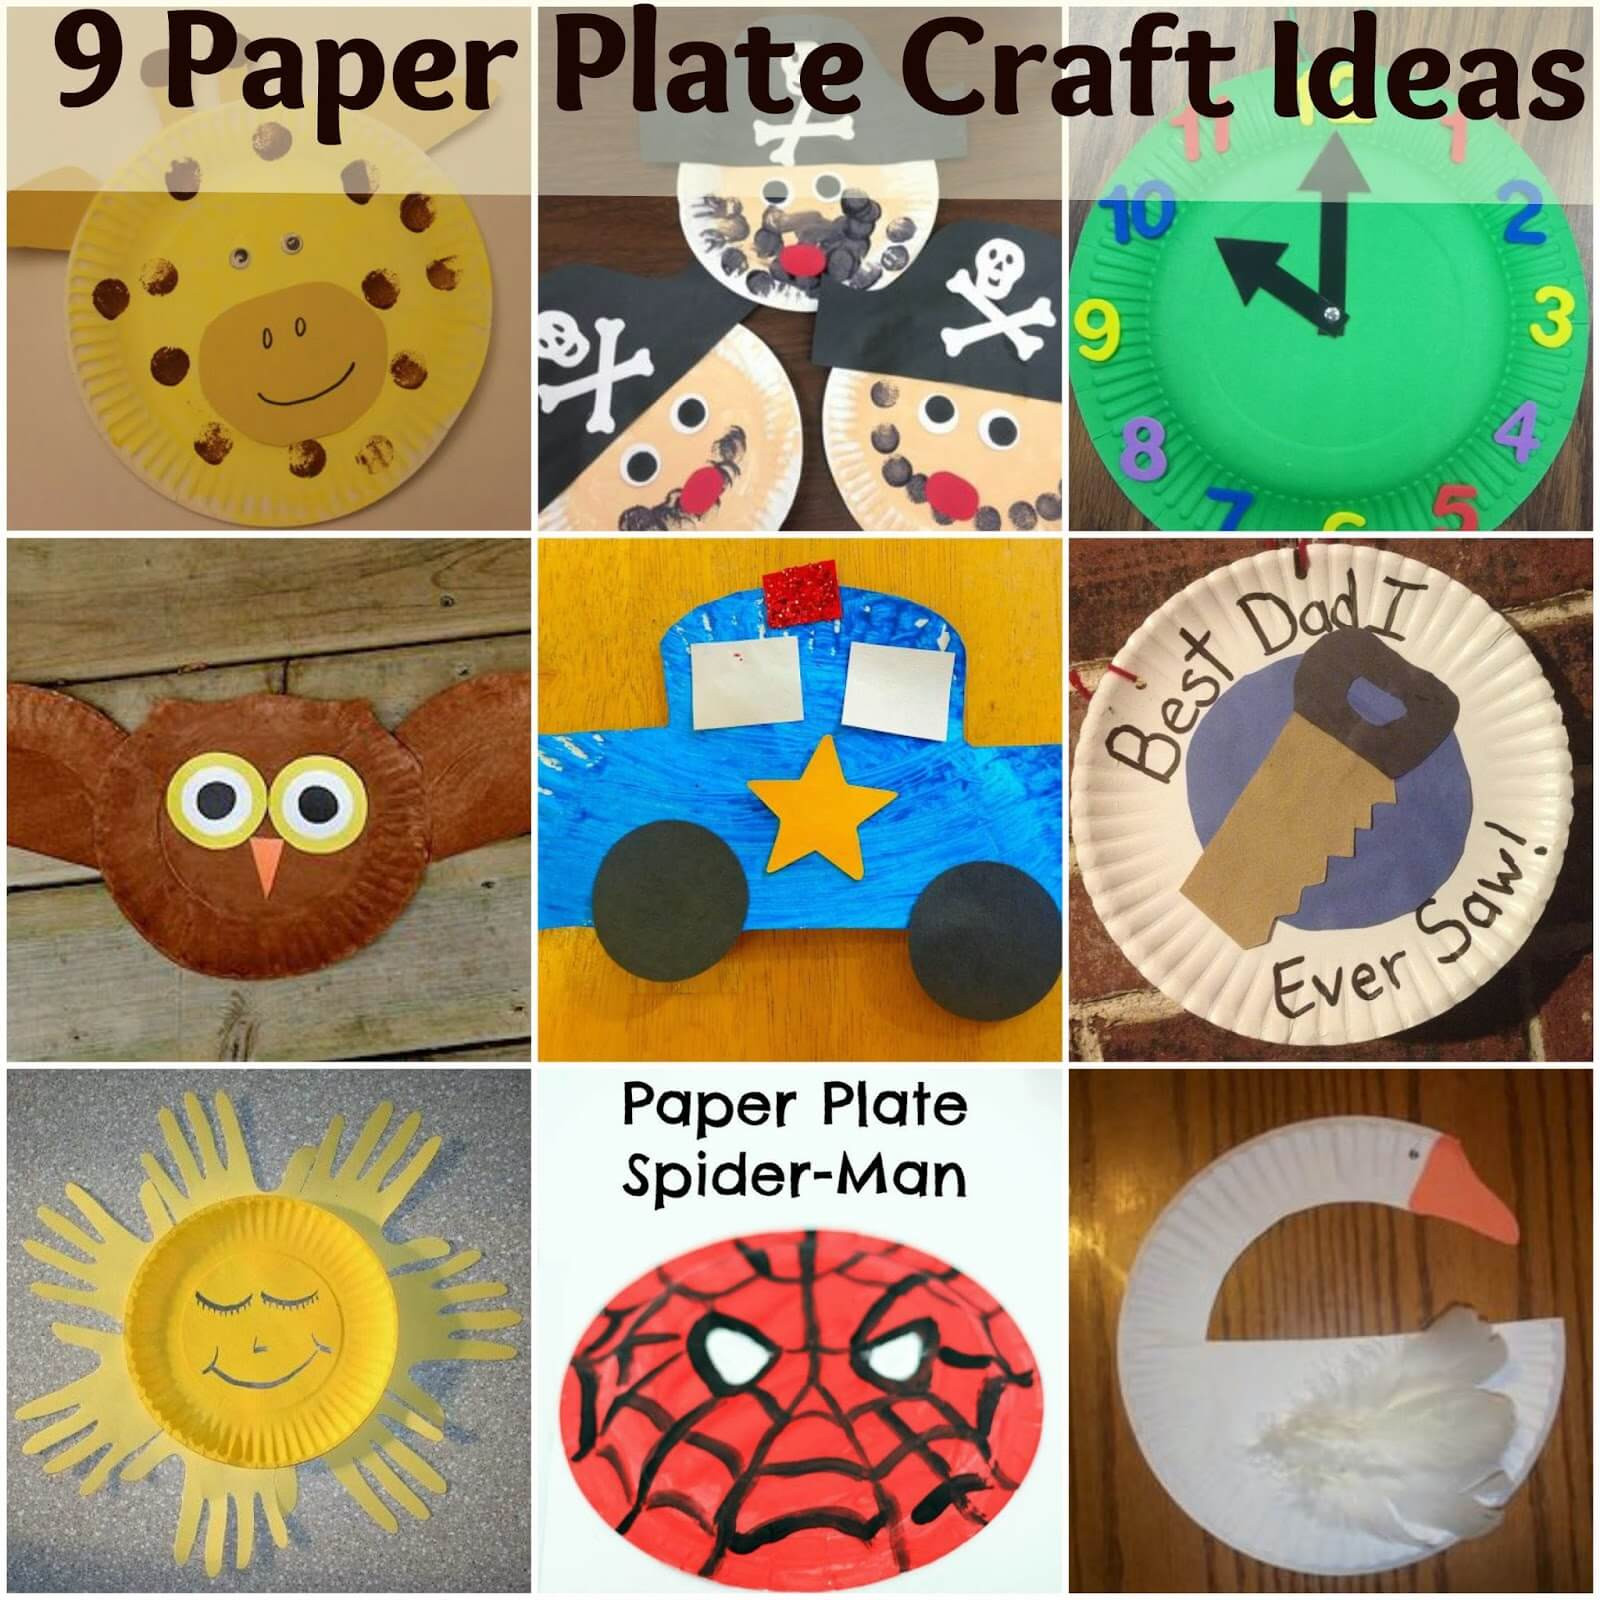 Fun Crafts For Preschoolers  9 Paper Plate Craft Ideas For Kids Mother 2 Mother Blog